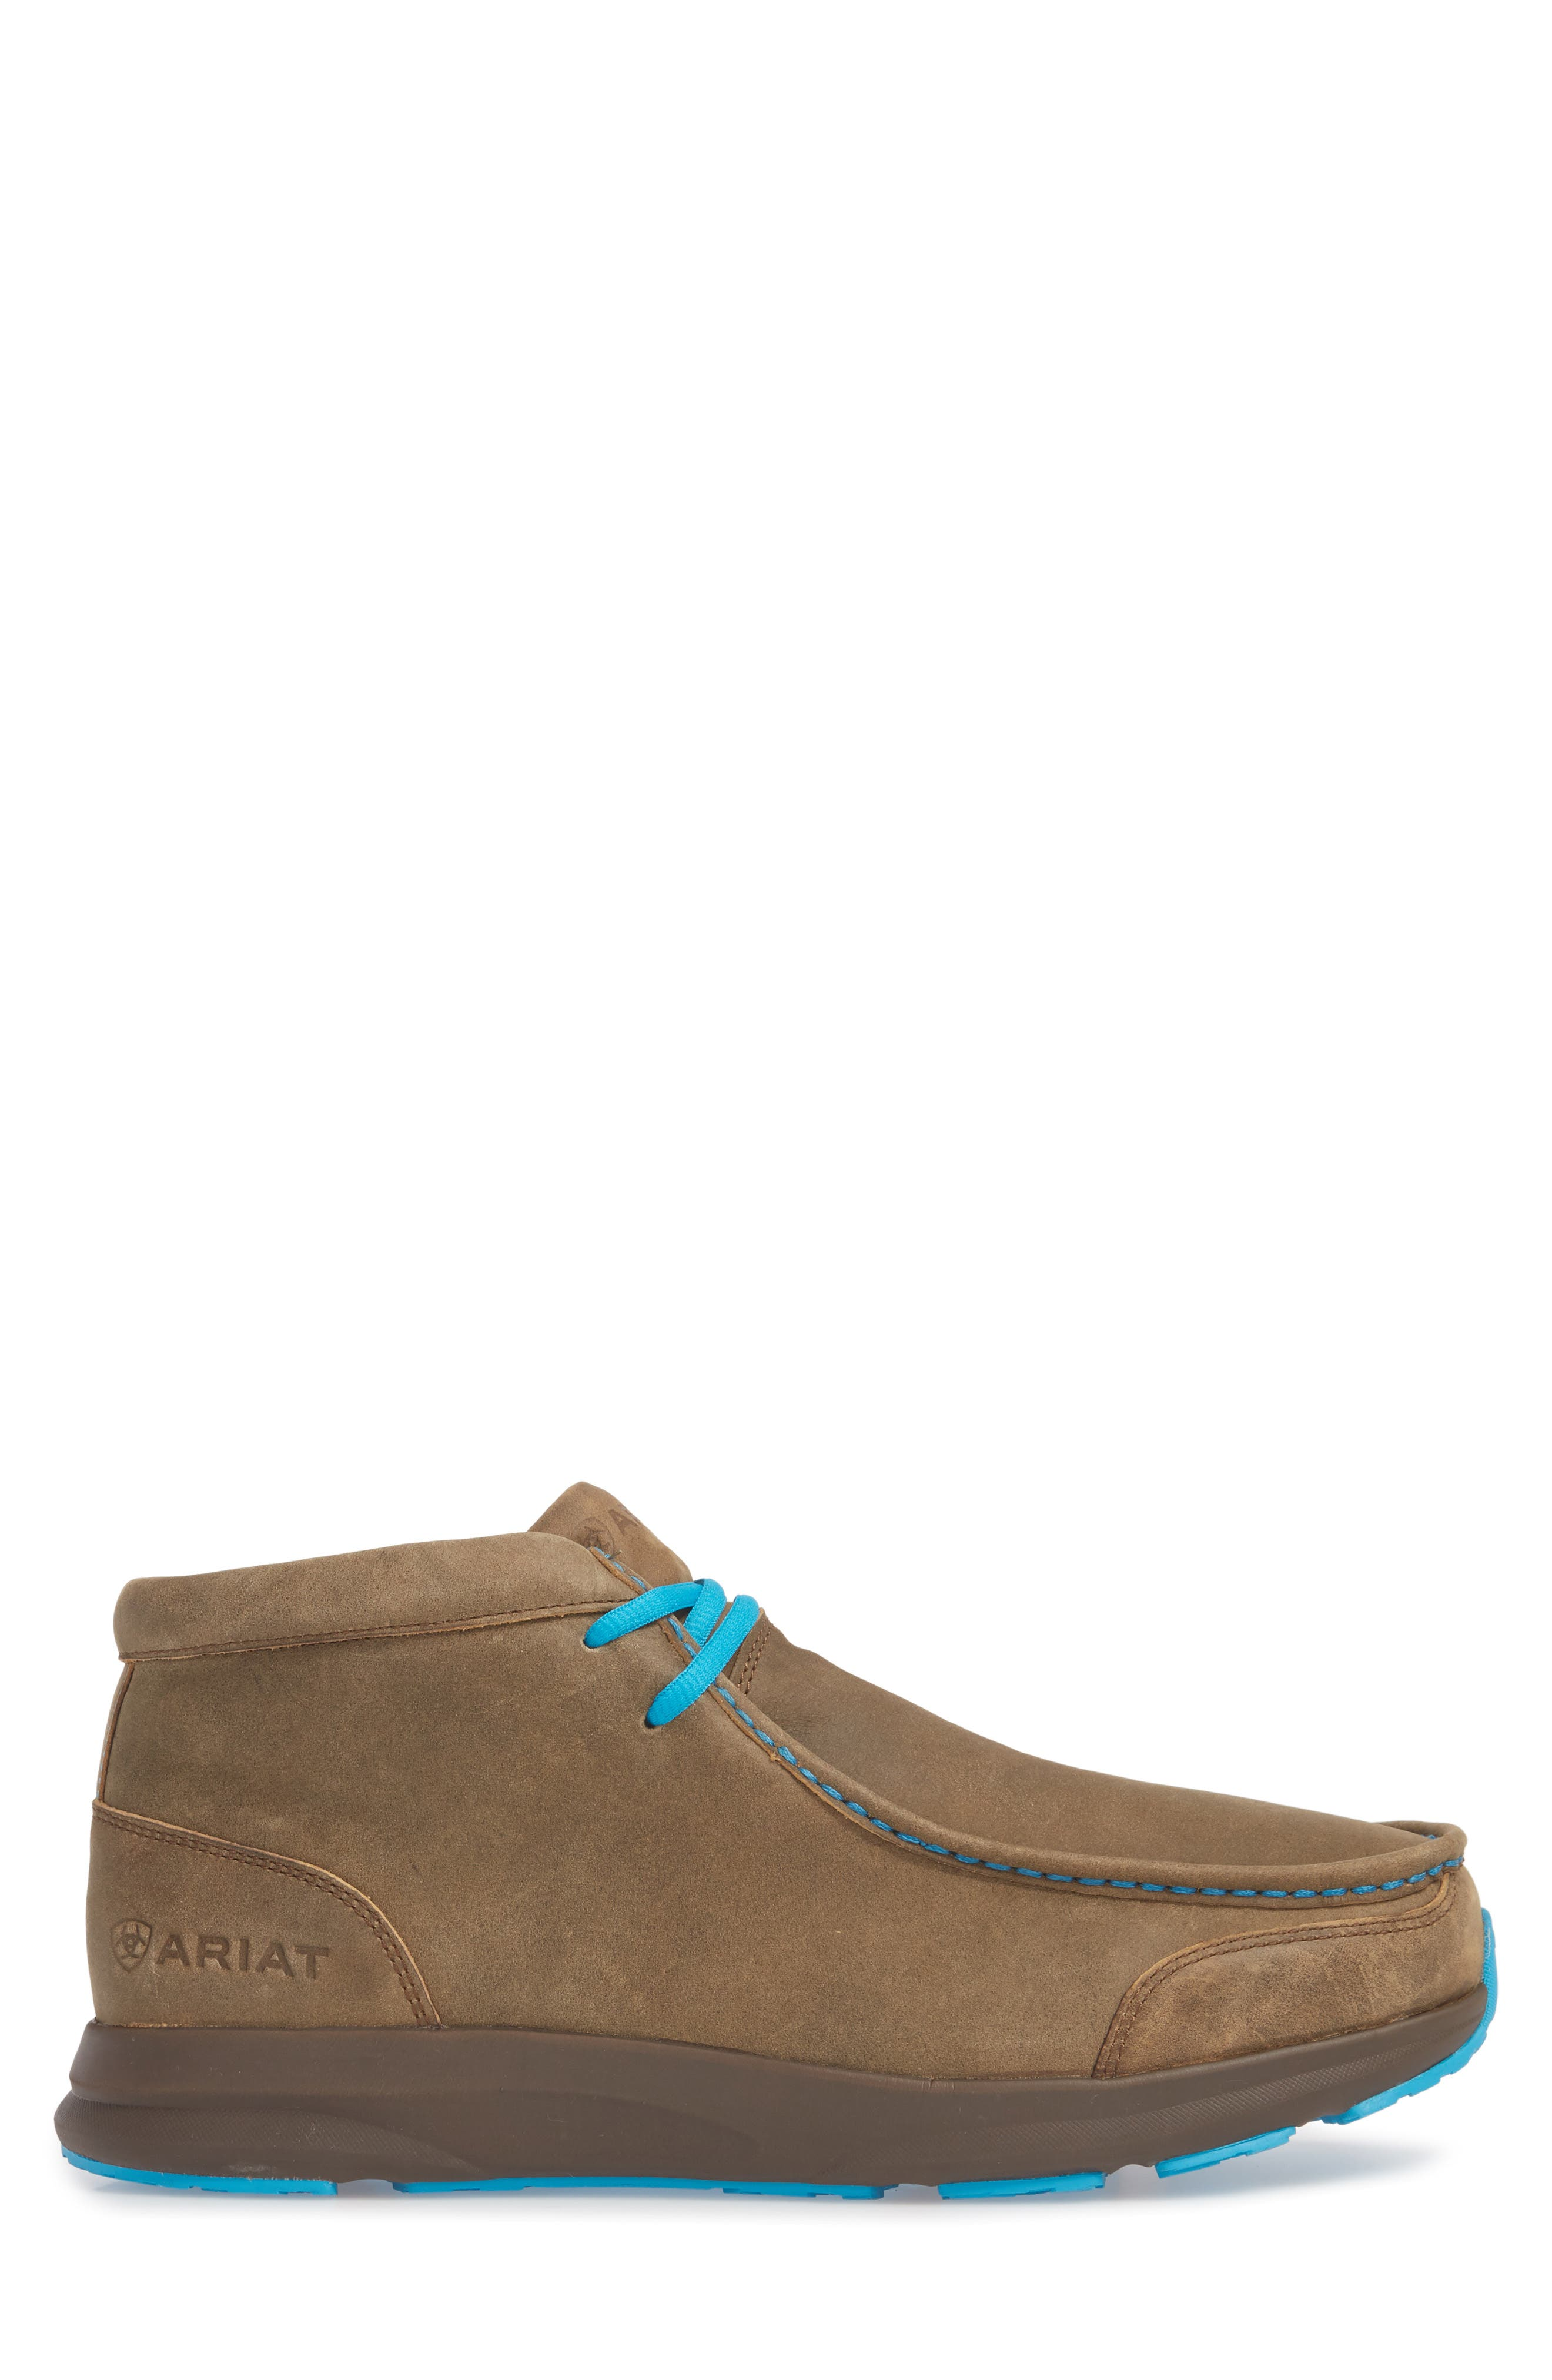 Spitfire Chukka Boot,                             Alternate thumbnail 3, color,                             BROWN BOMBER/ BLUE LEATHER